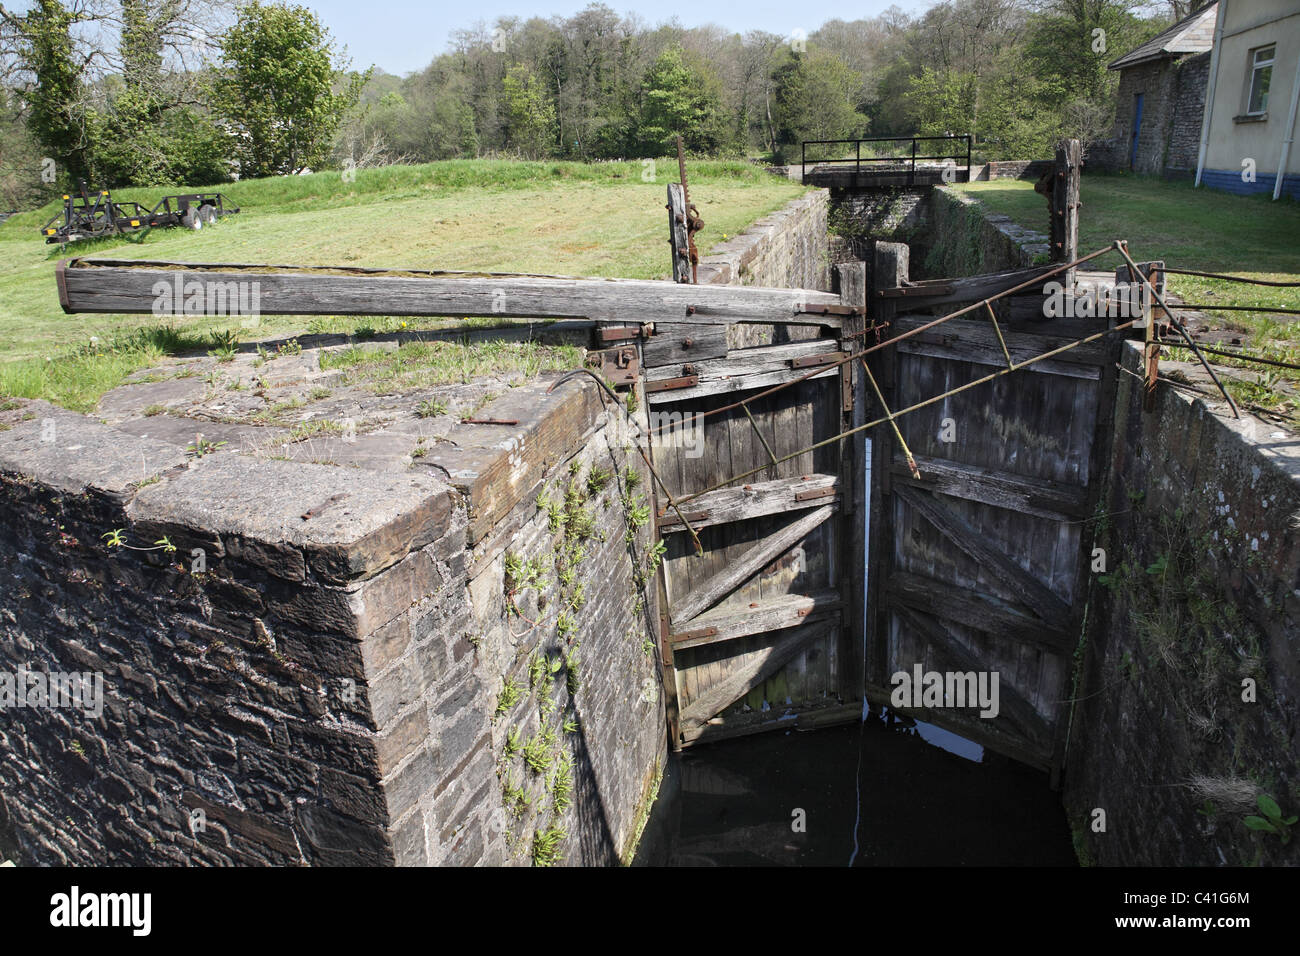 The disused lock gates of the Tennant canal at Aberdulais, Neath, South Wales, UK - Stock Image